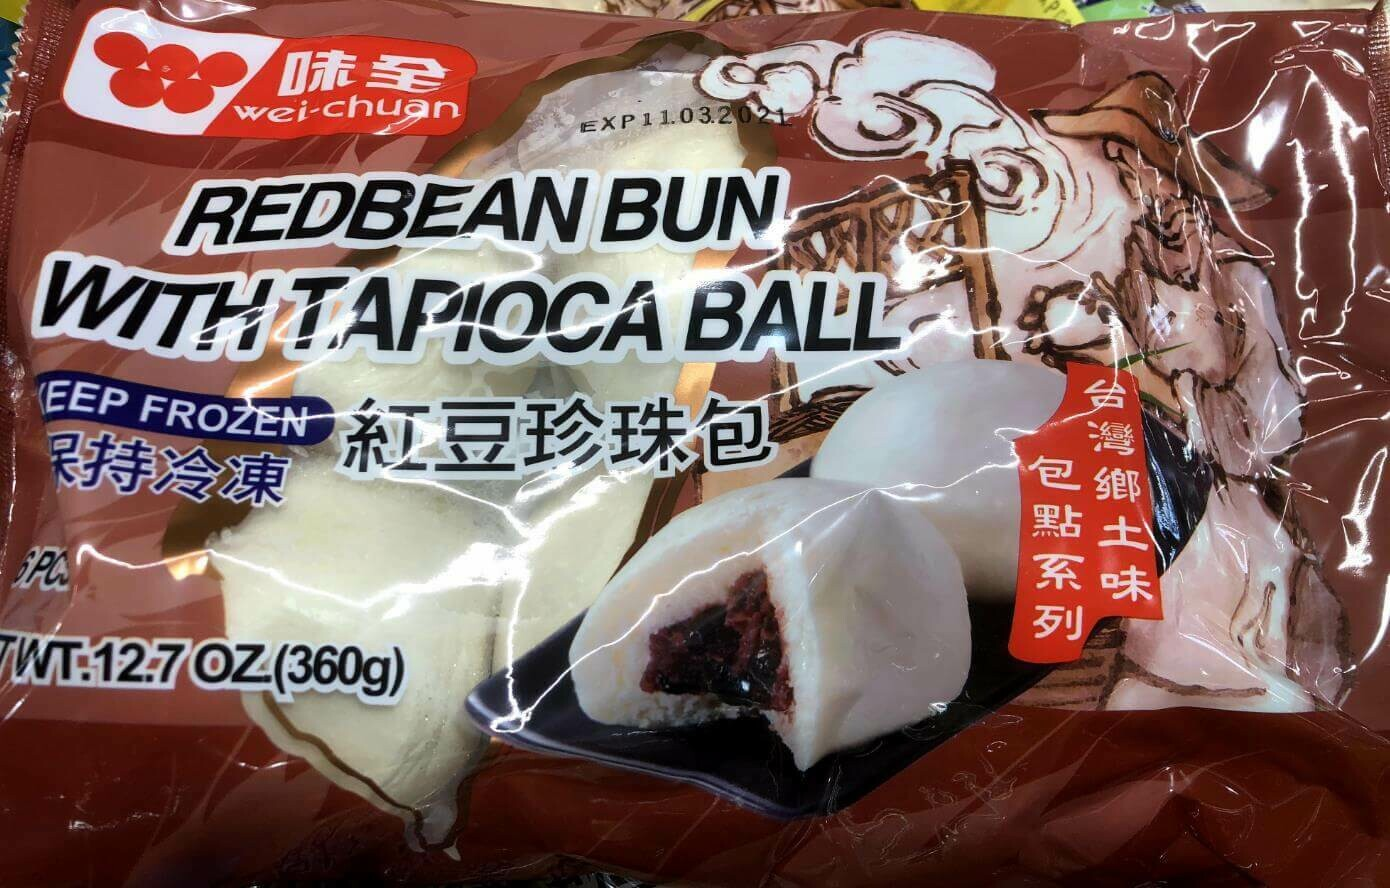 【RBF】Wei-Chuan  Red bean Bun With Tapioca Ball 味全 红豆珍珠包 12.7oz(360g)